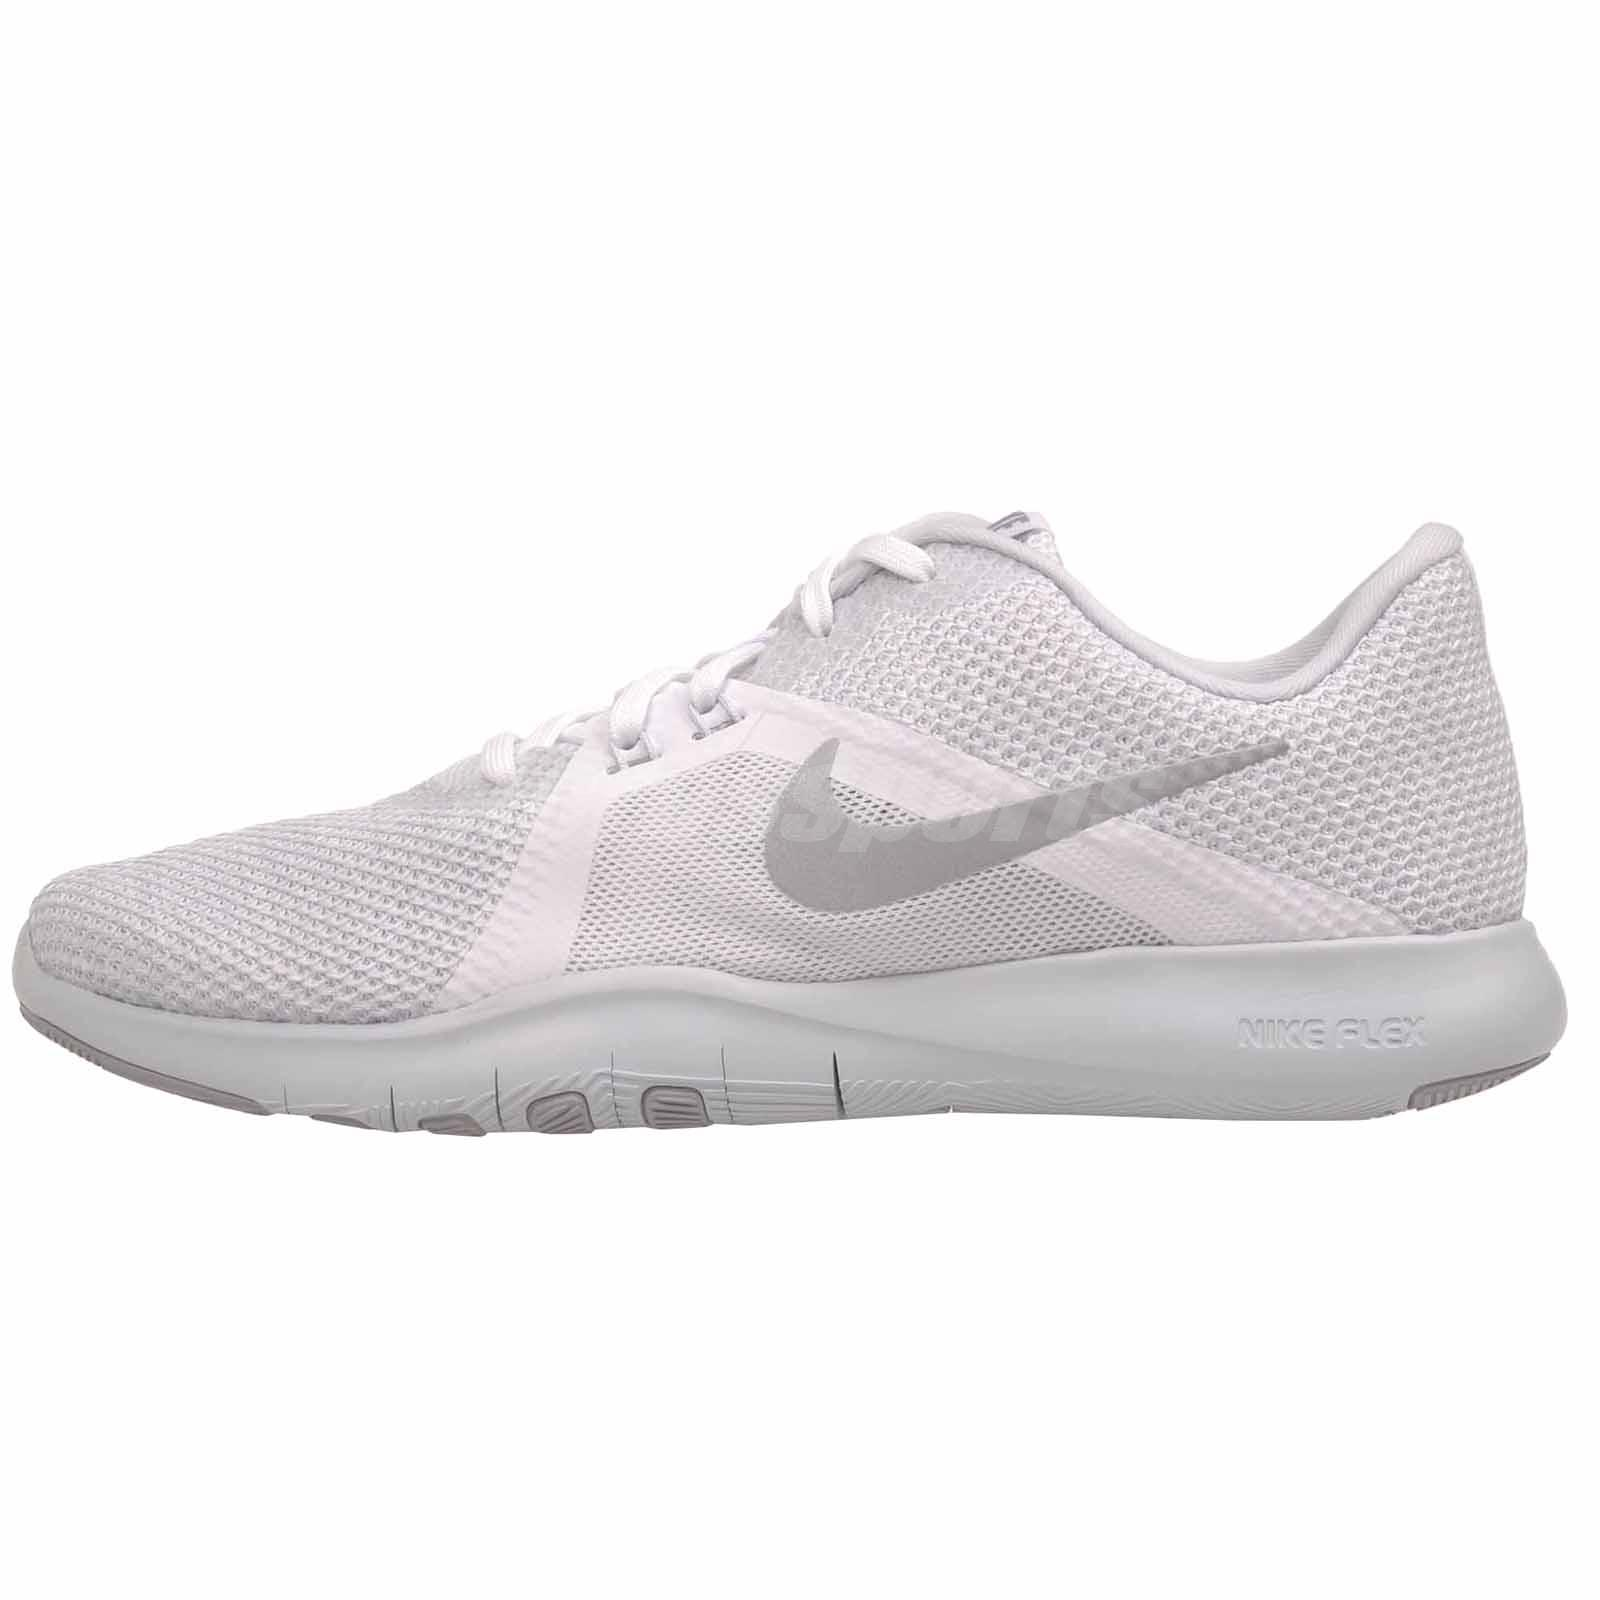 17ae500cce3a2 Details about Nike W Flex Trainer 8 Cross Training Womens Shoes White Silver  924339-100